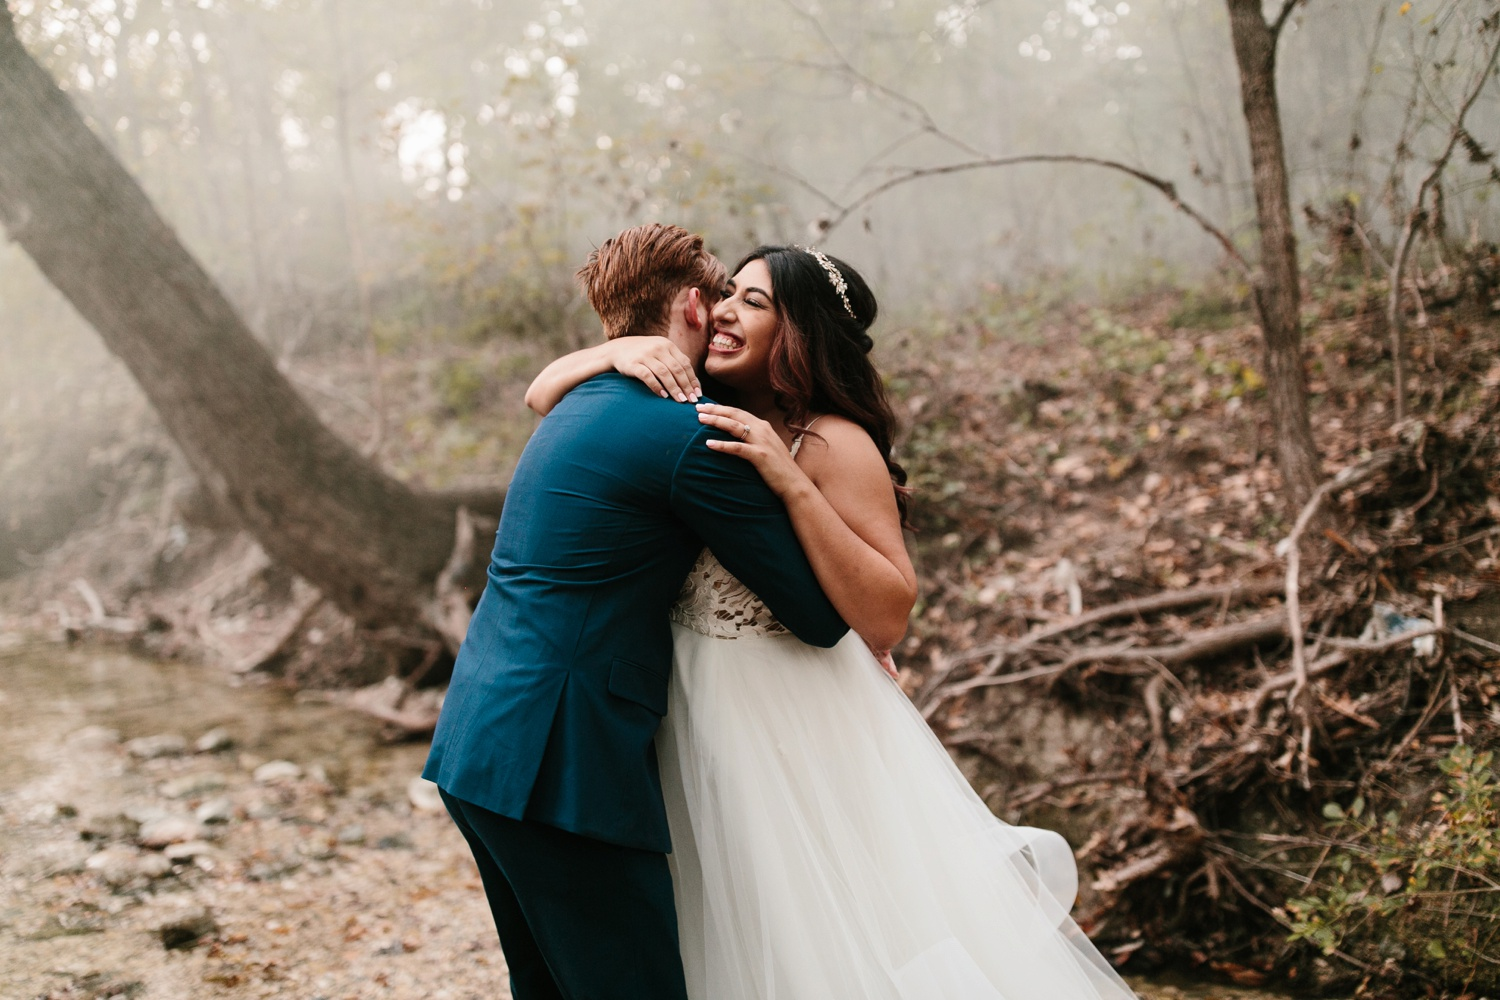 Grant + Lysette | a vibrant, deep burgundy and navy, and mixed metals wedding at Hidden Pines Chapel by North Texas Wedding Photographer Rachel Meagan Photography 260